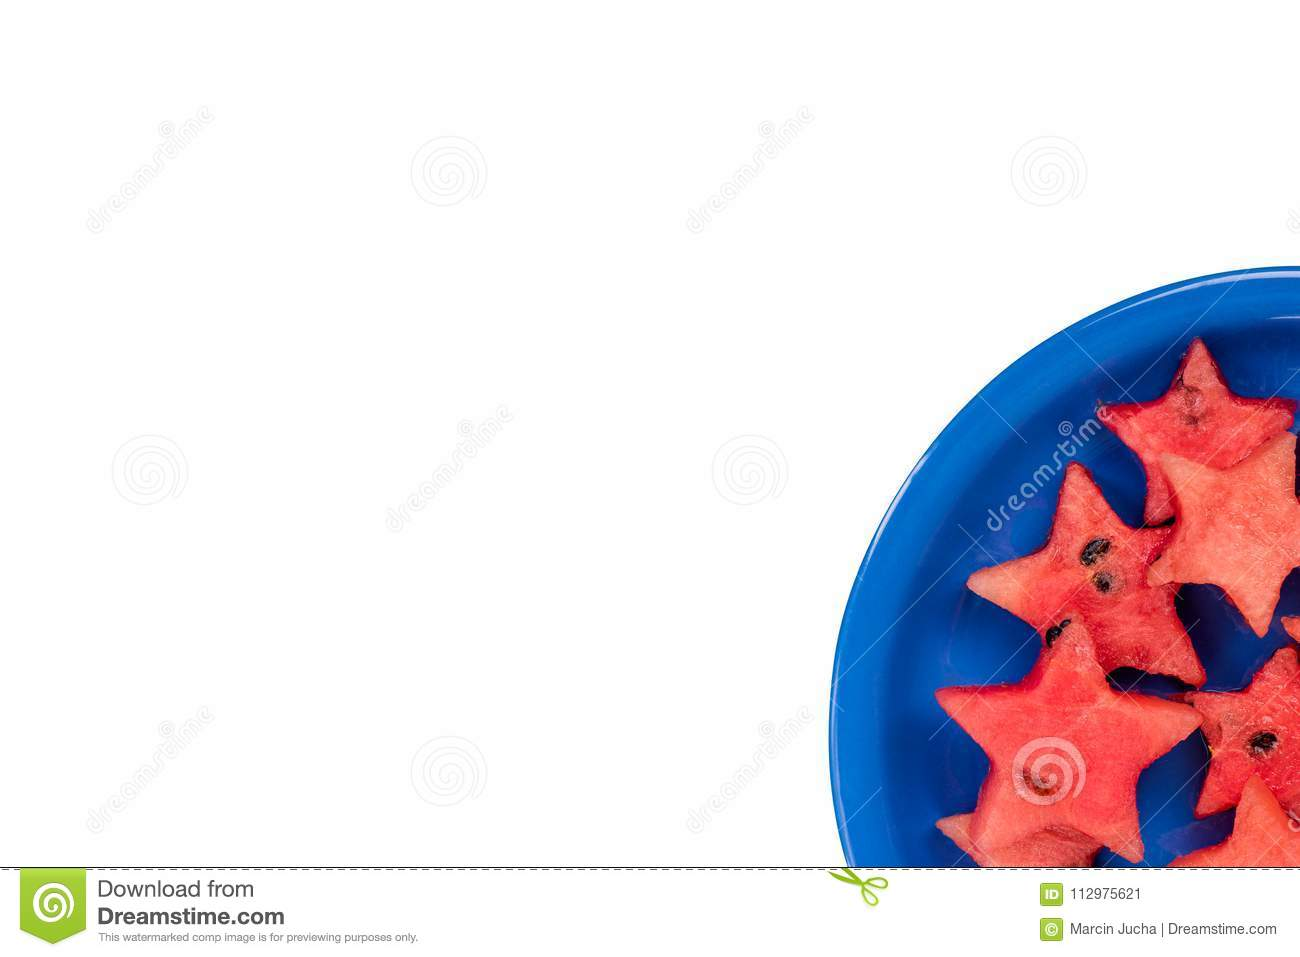 Watermelon creative star pieces, isolated